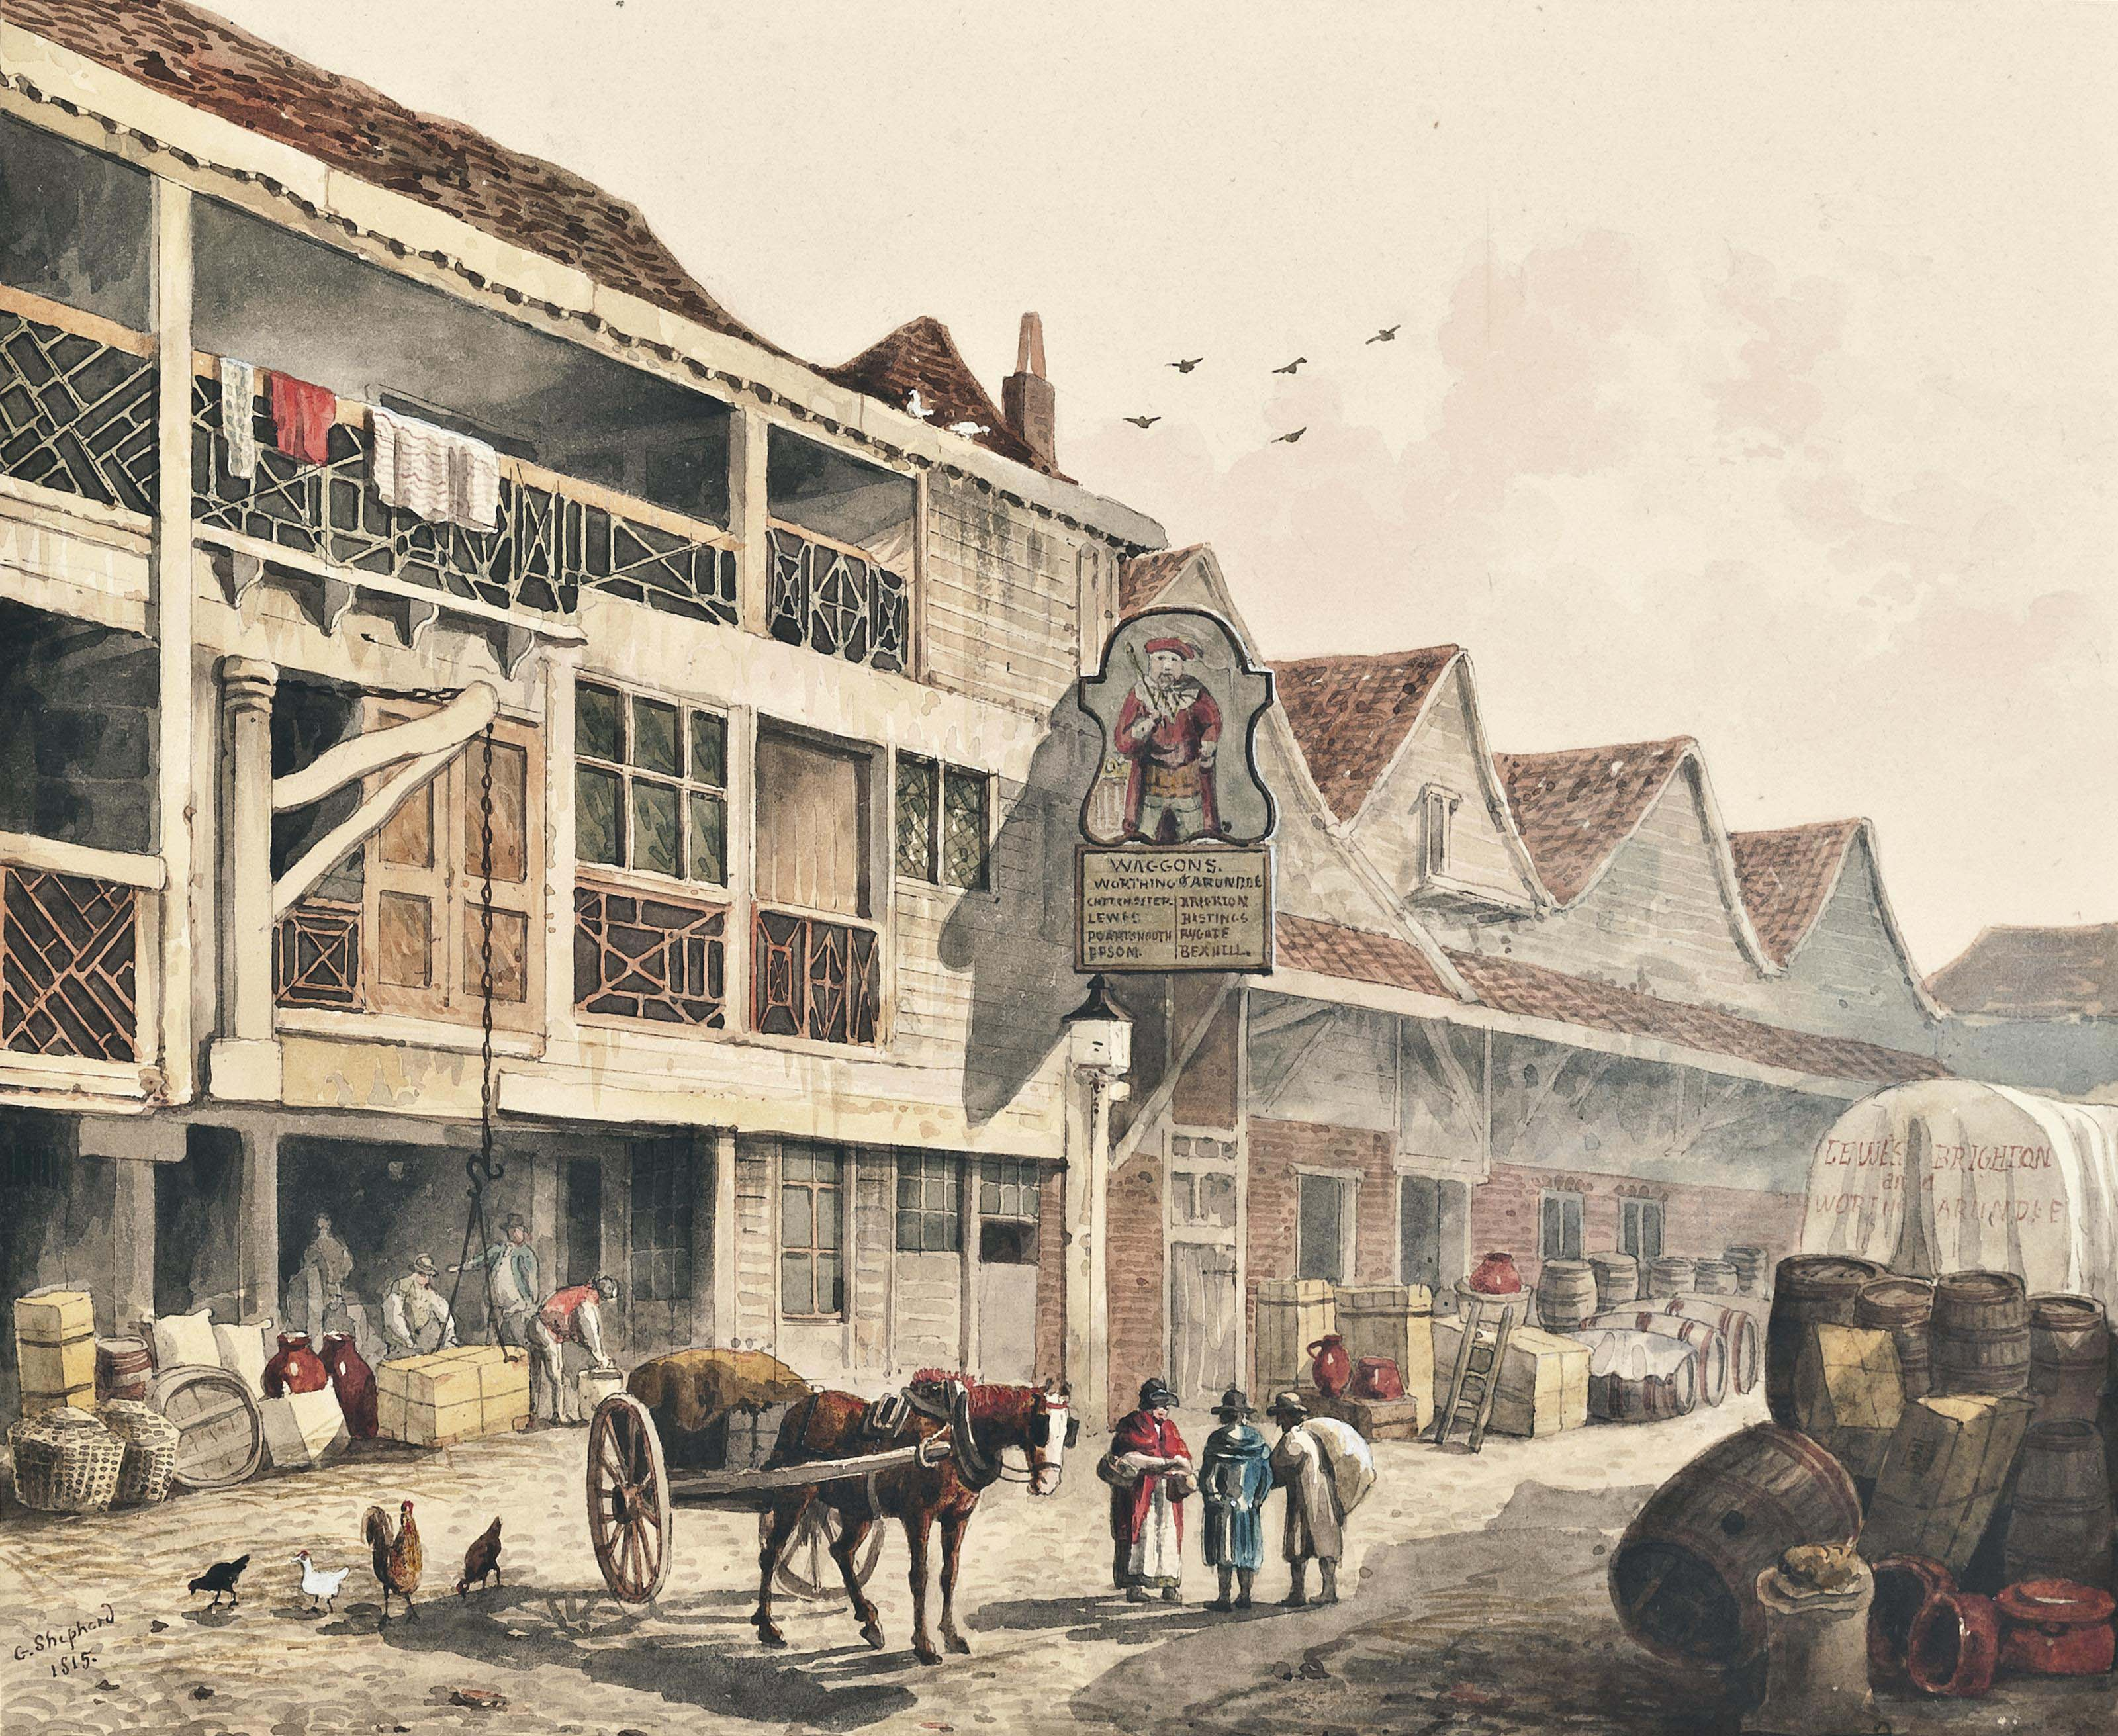 The King's Head, Southwark